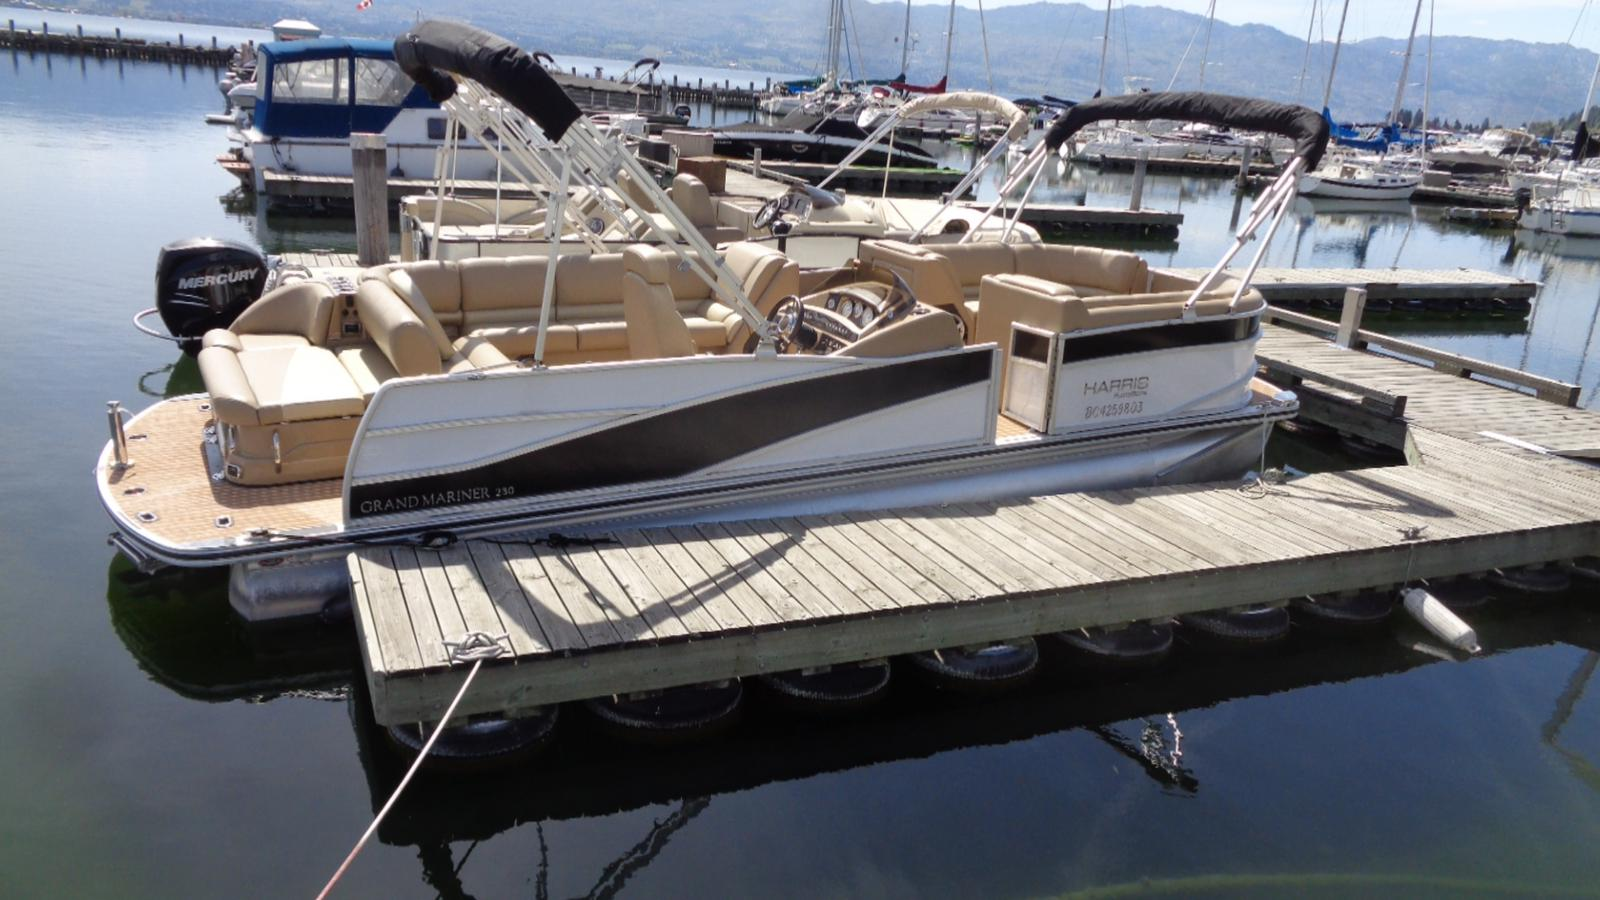 For Sale: 2014 Harris Grand Mariner 230 26ft<br/>Dockside Marine Centre, LTD.